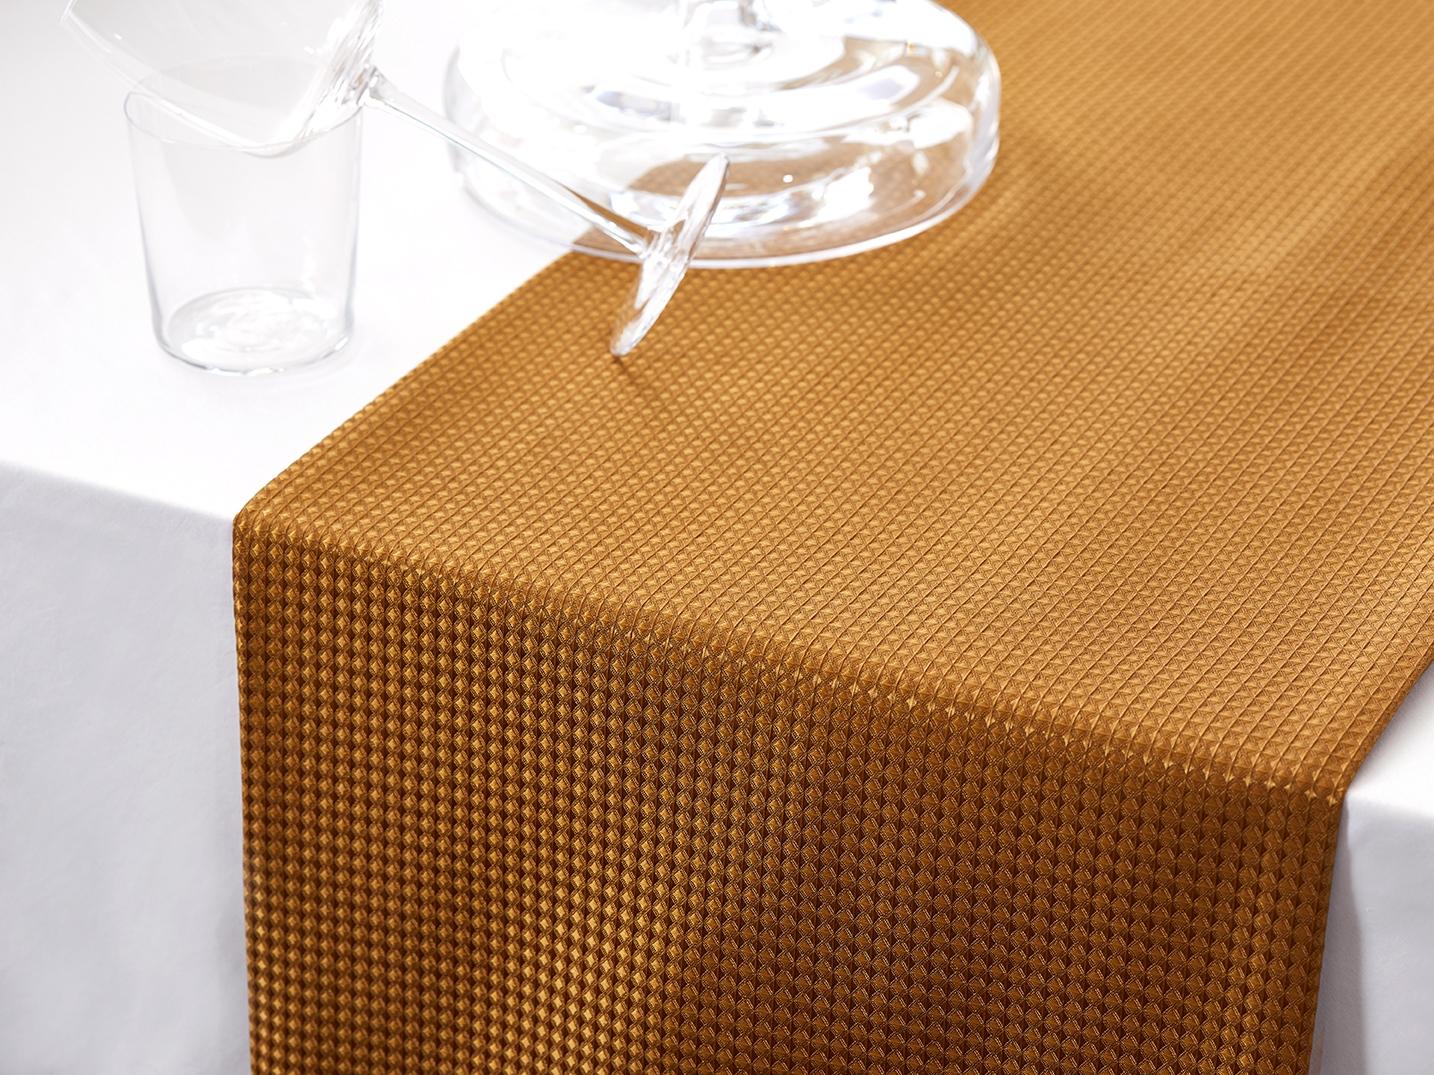 Revival_New_York_Luxury_Table_Linens_Runners_Custom_Products_Hospitality_Hotels